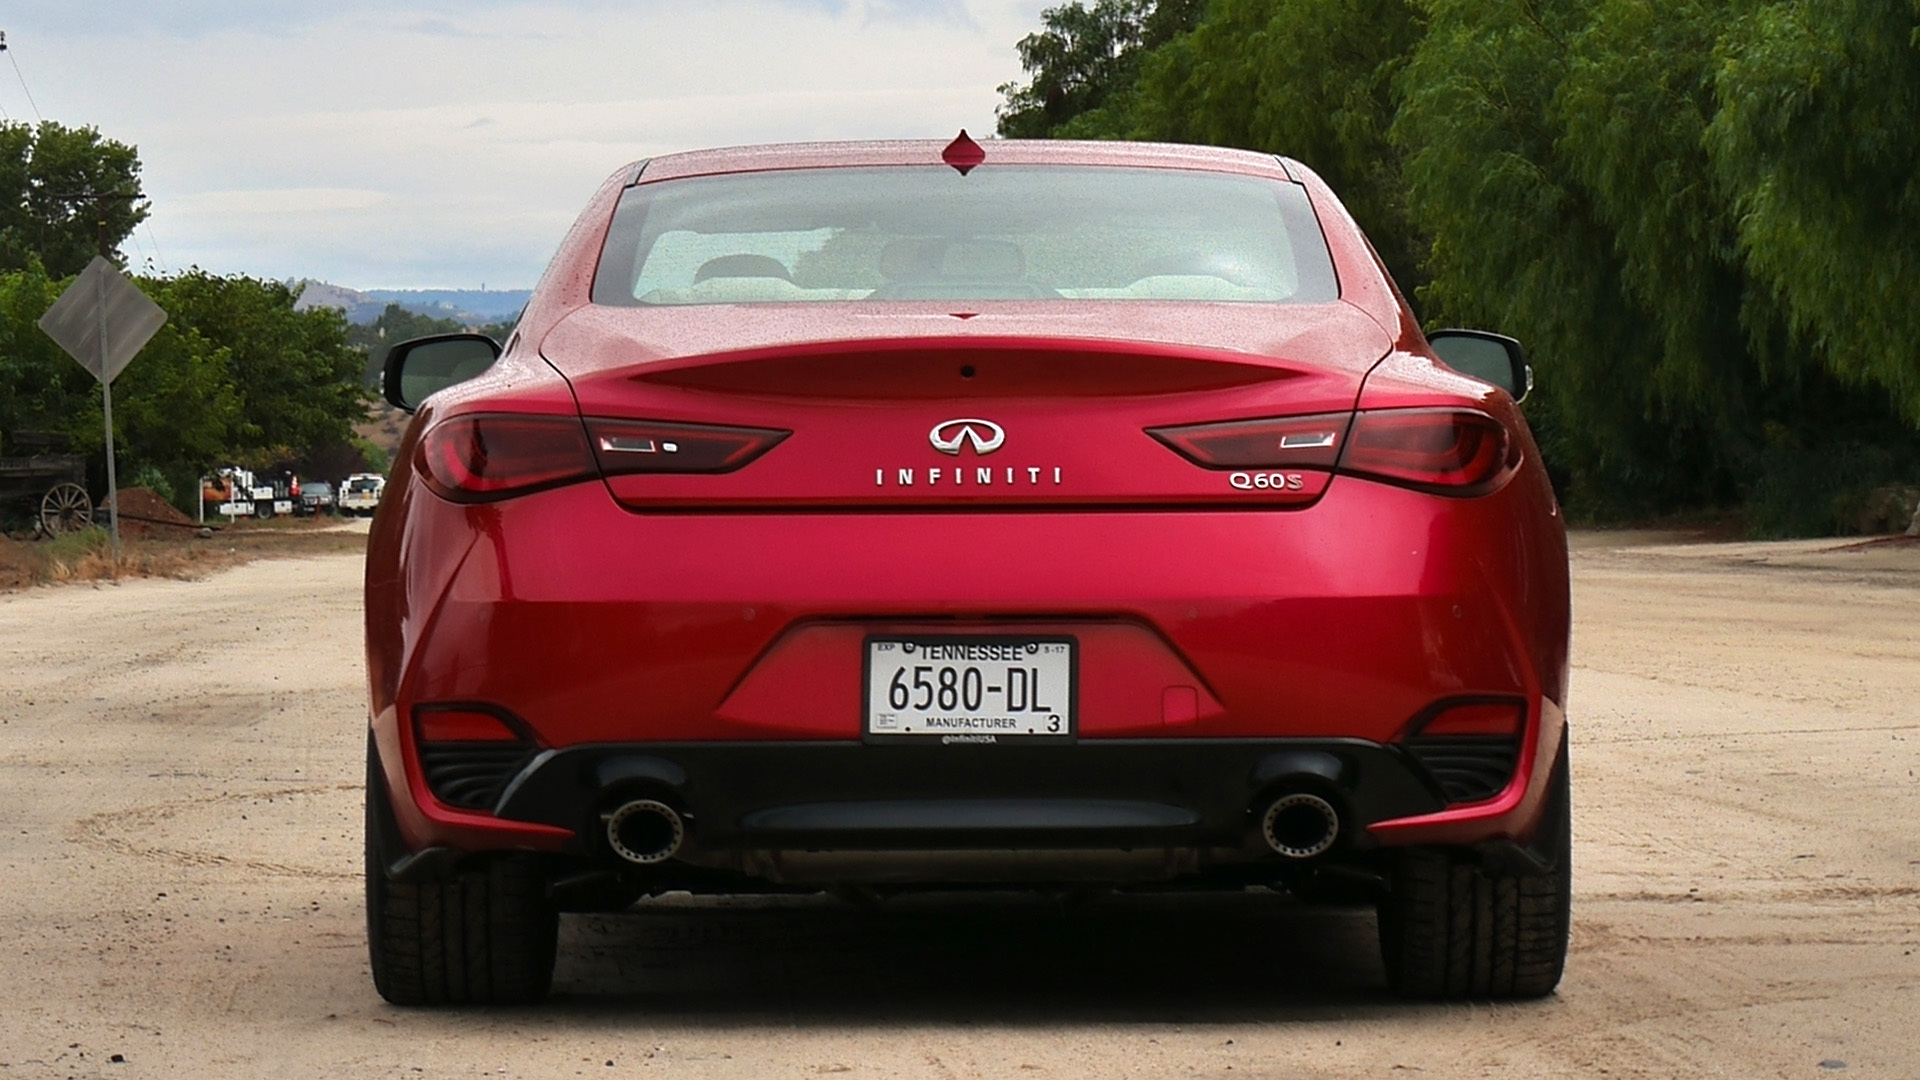 2017 Infiniti Q60 Red Exterior Rear (Photo 16 of 32)